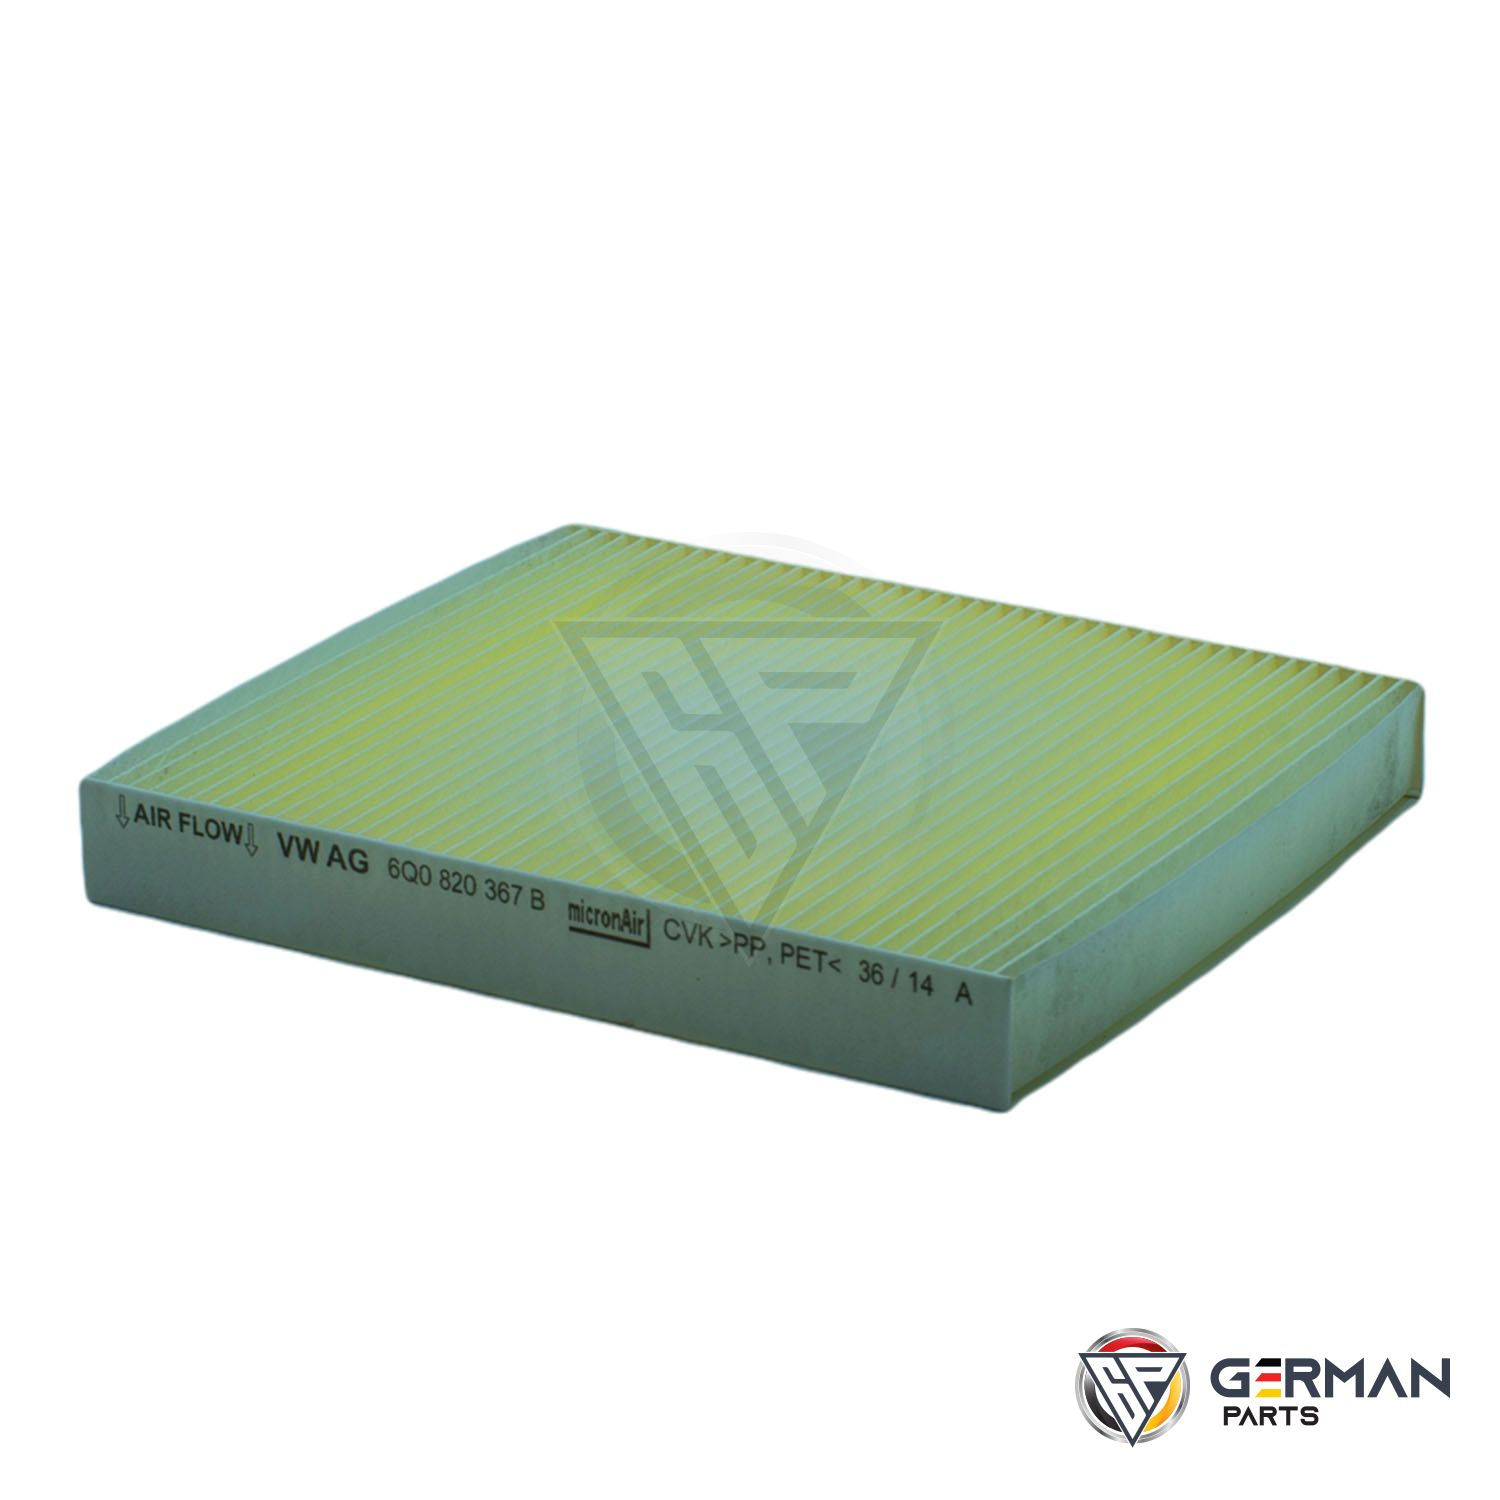 Buy Genuine Audi/Volkswagen Air Filter 6Q0820367 - German Parts